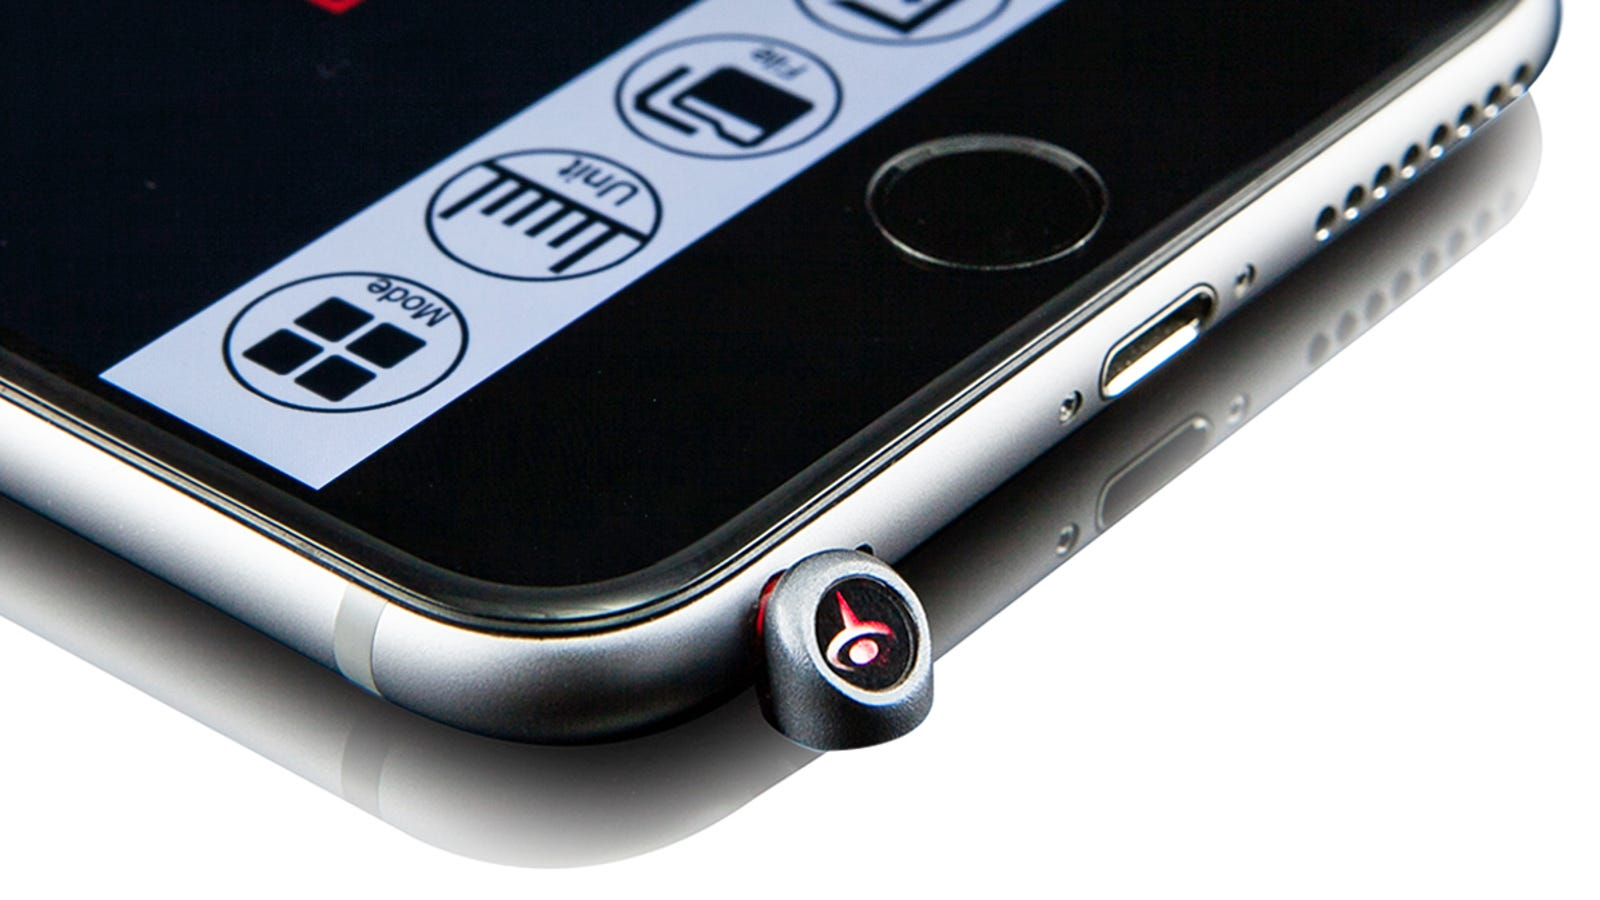 Turn Your iPhone Into a Laser Measure With This Tiny Headphone Jack Accessory